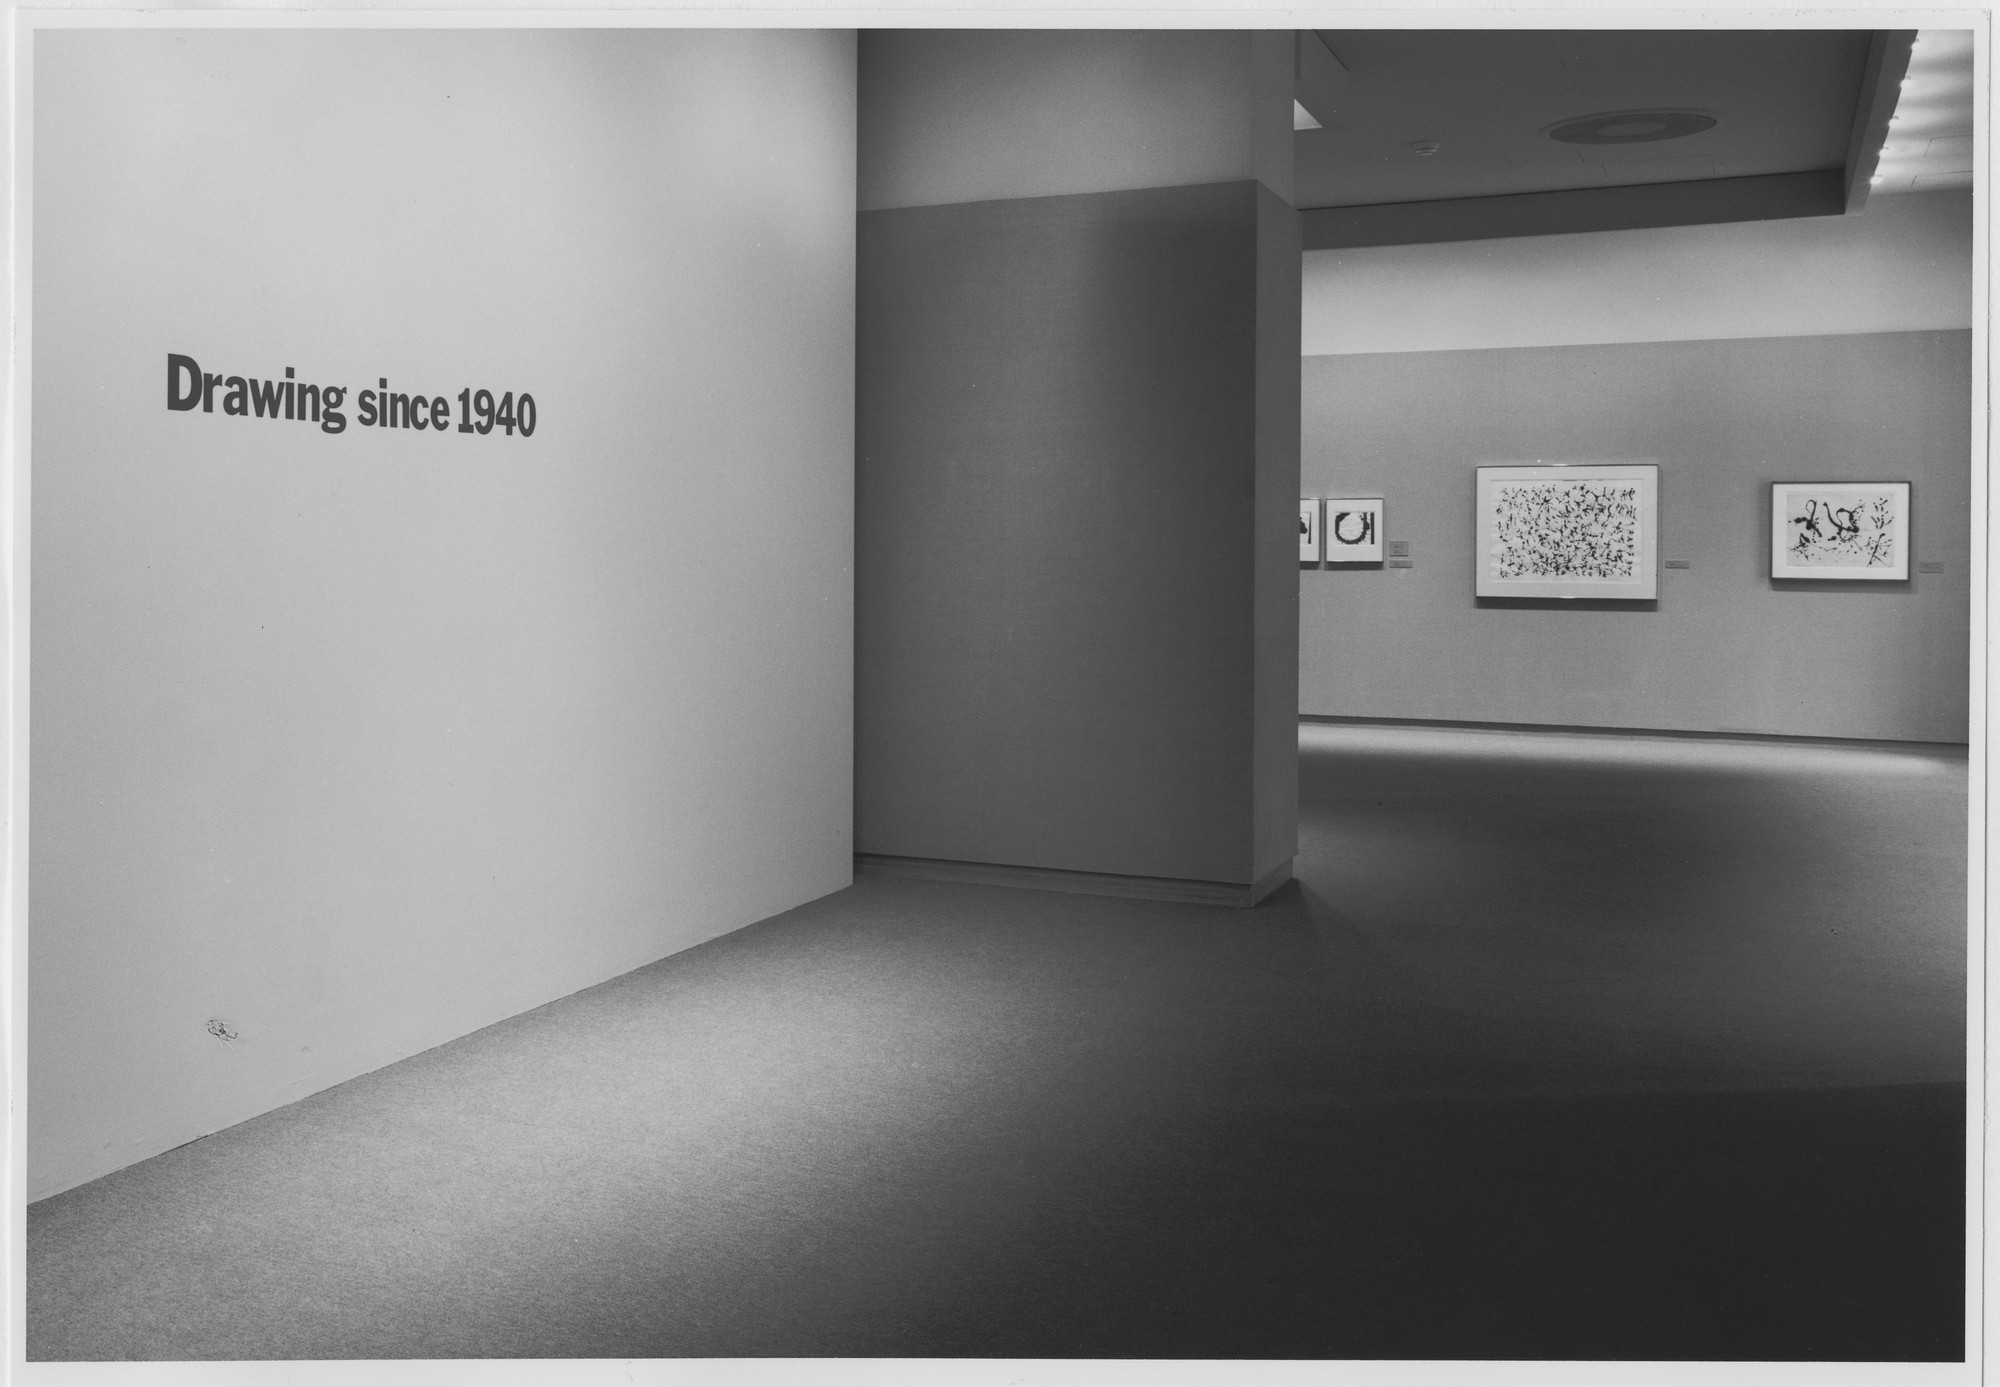 "Installation view of the exhibition, ""Drawing After 1940"" June 25, 1987–October 13, 1987. Photographic Archive. The Museum of Modern Art Archives, New York. IN1455.1. Photograph by Mali Olatunji."